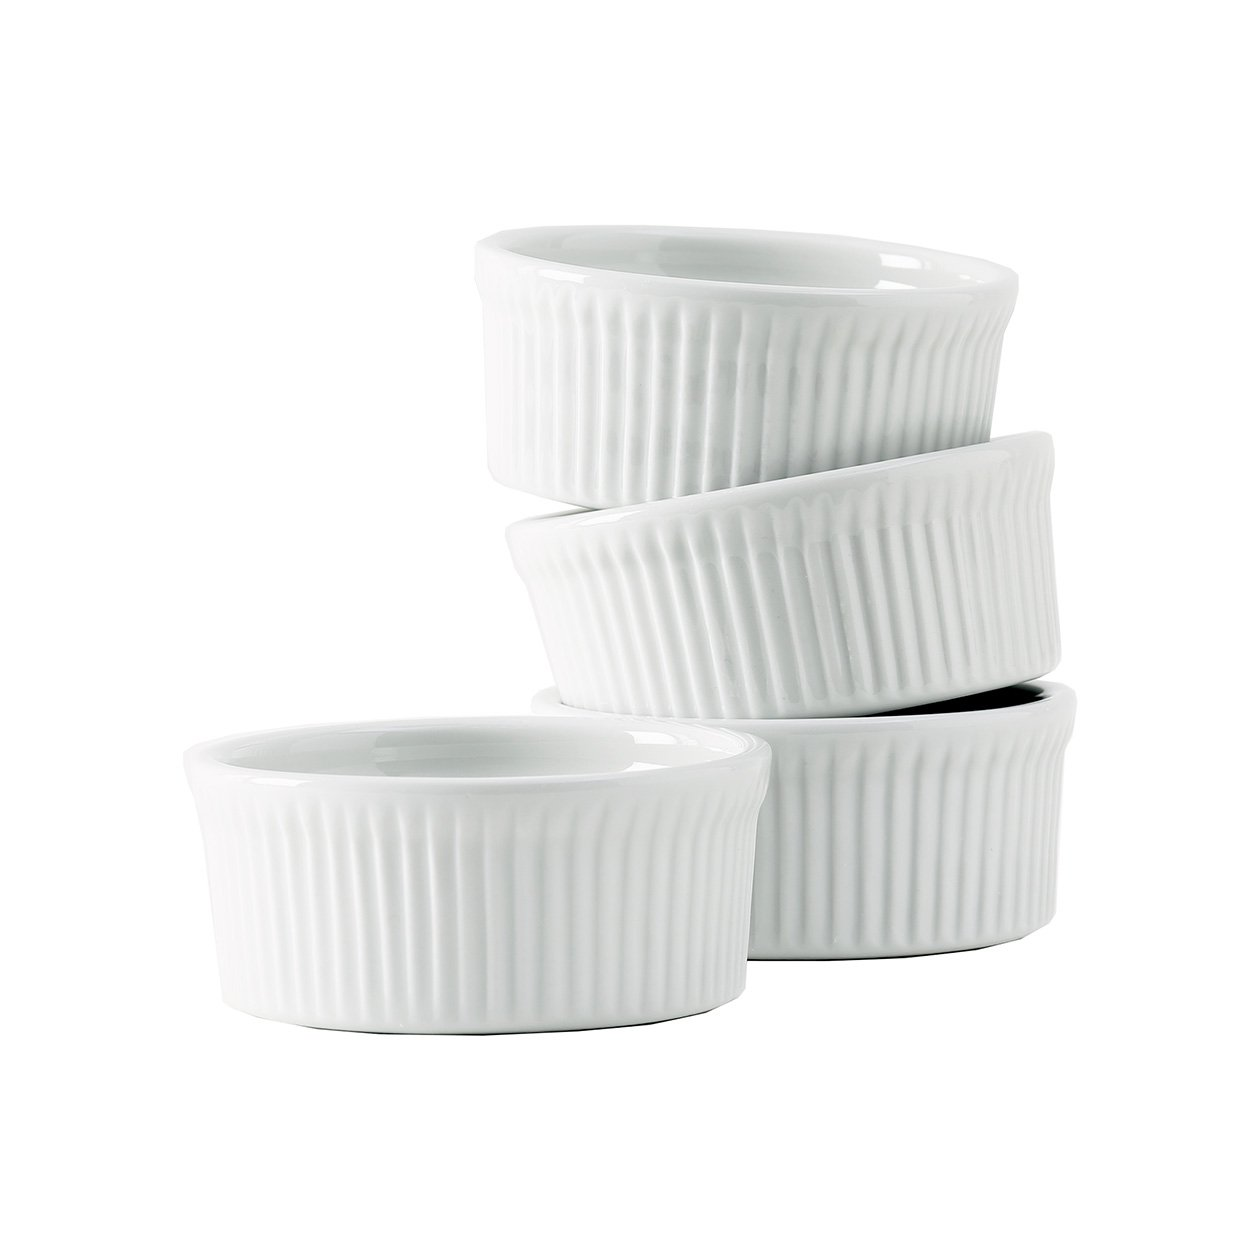 Tuxton Home Duratux Porcelain White Soufflà 10 oz - Set of 4; Heavy Duty; Chip Resistant; Lead and Cadmium Free; Freezer to Oven Safe up to 500F by Tuxton Home